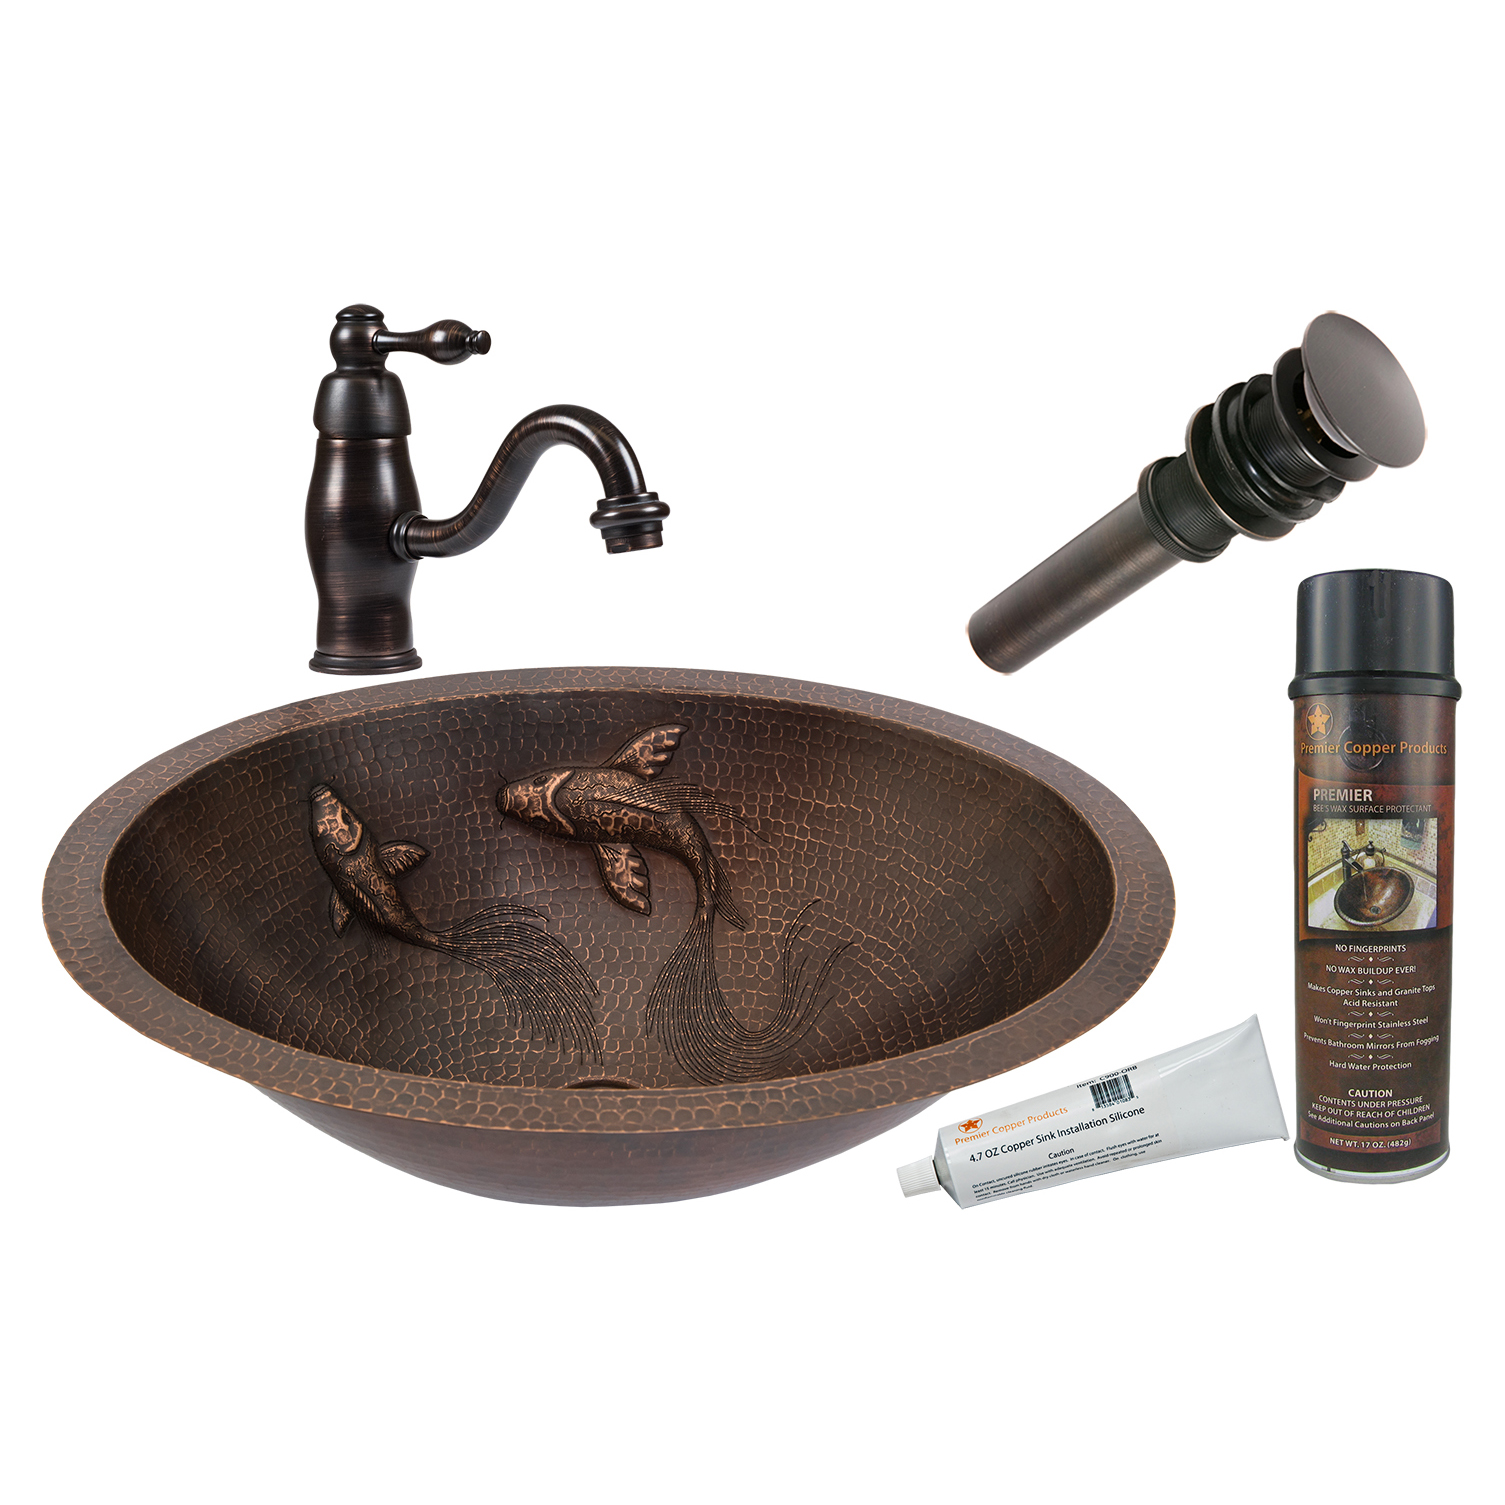 Oval Under Counter Hammered Copper Koi Bathroom Sink, Faucet and Accessories Package, Oil Rubbed Bronze